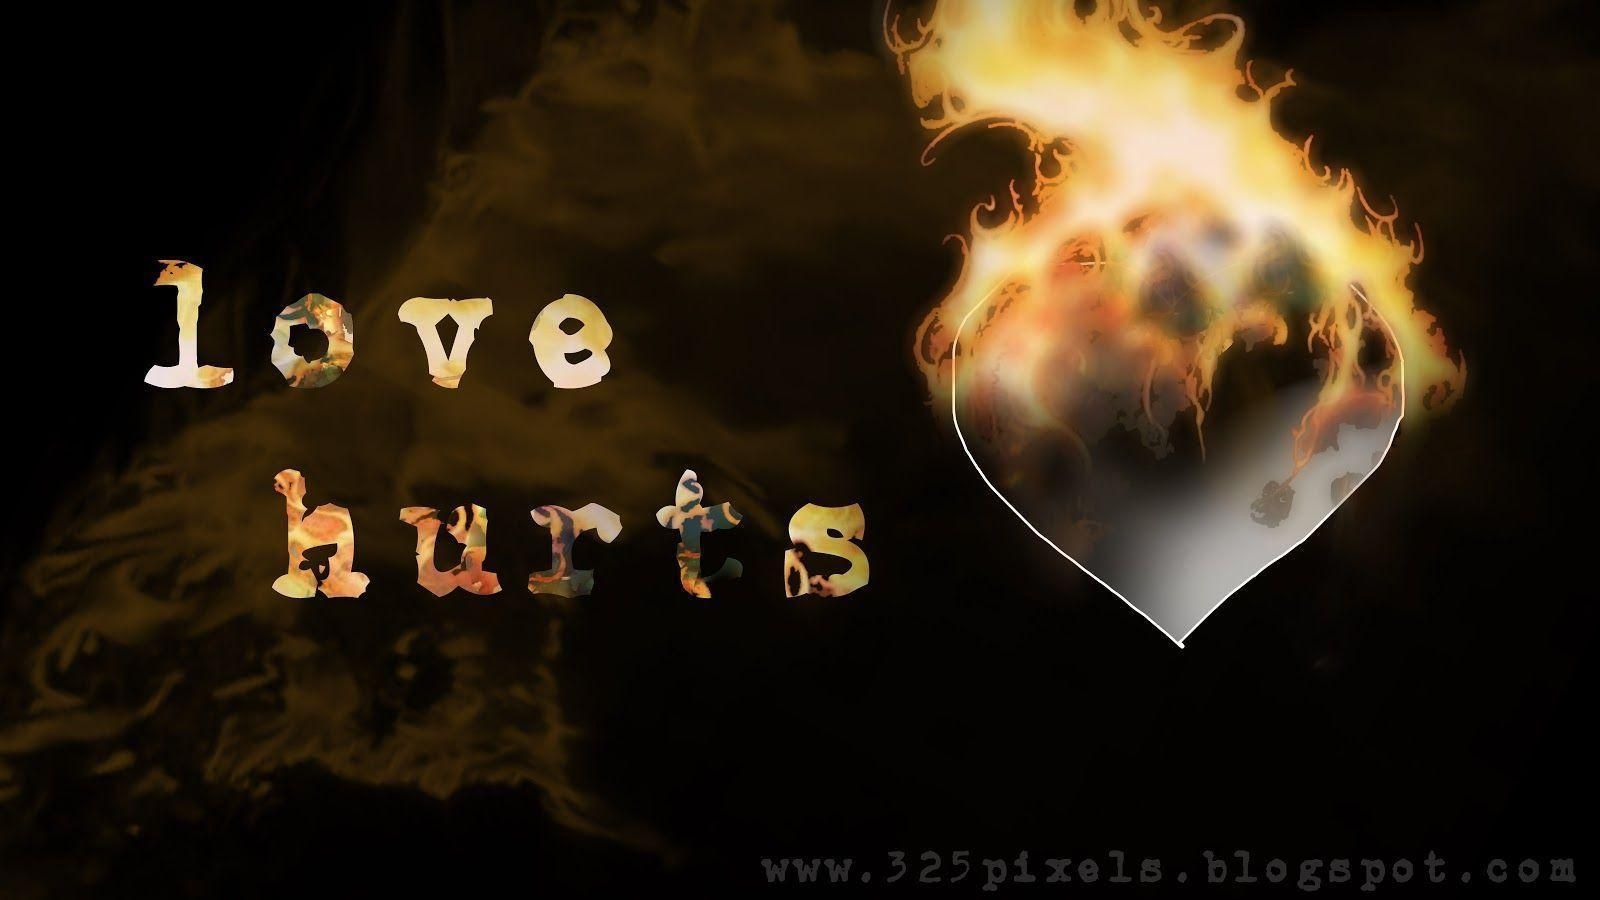 Love Wallpaper Wallpaper cave : Love Hurts Wallpapers - Wallpaper cave